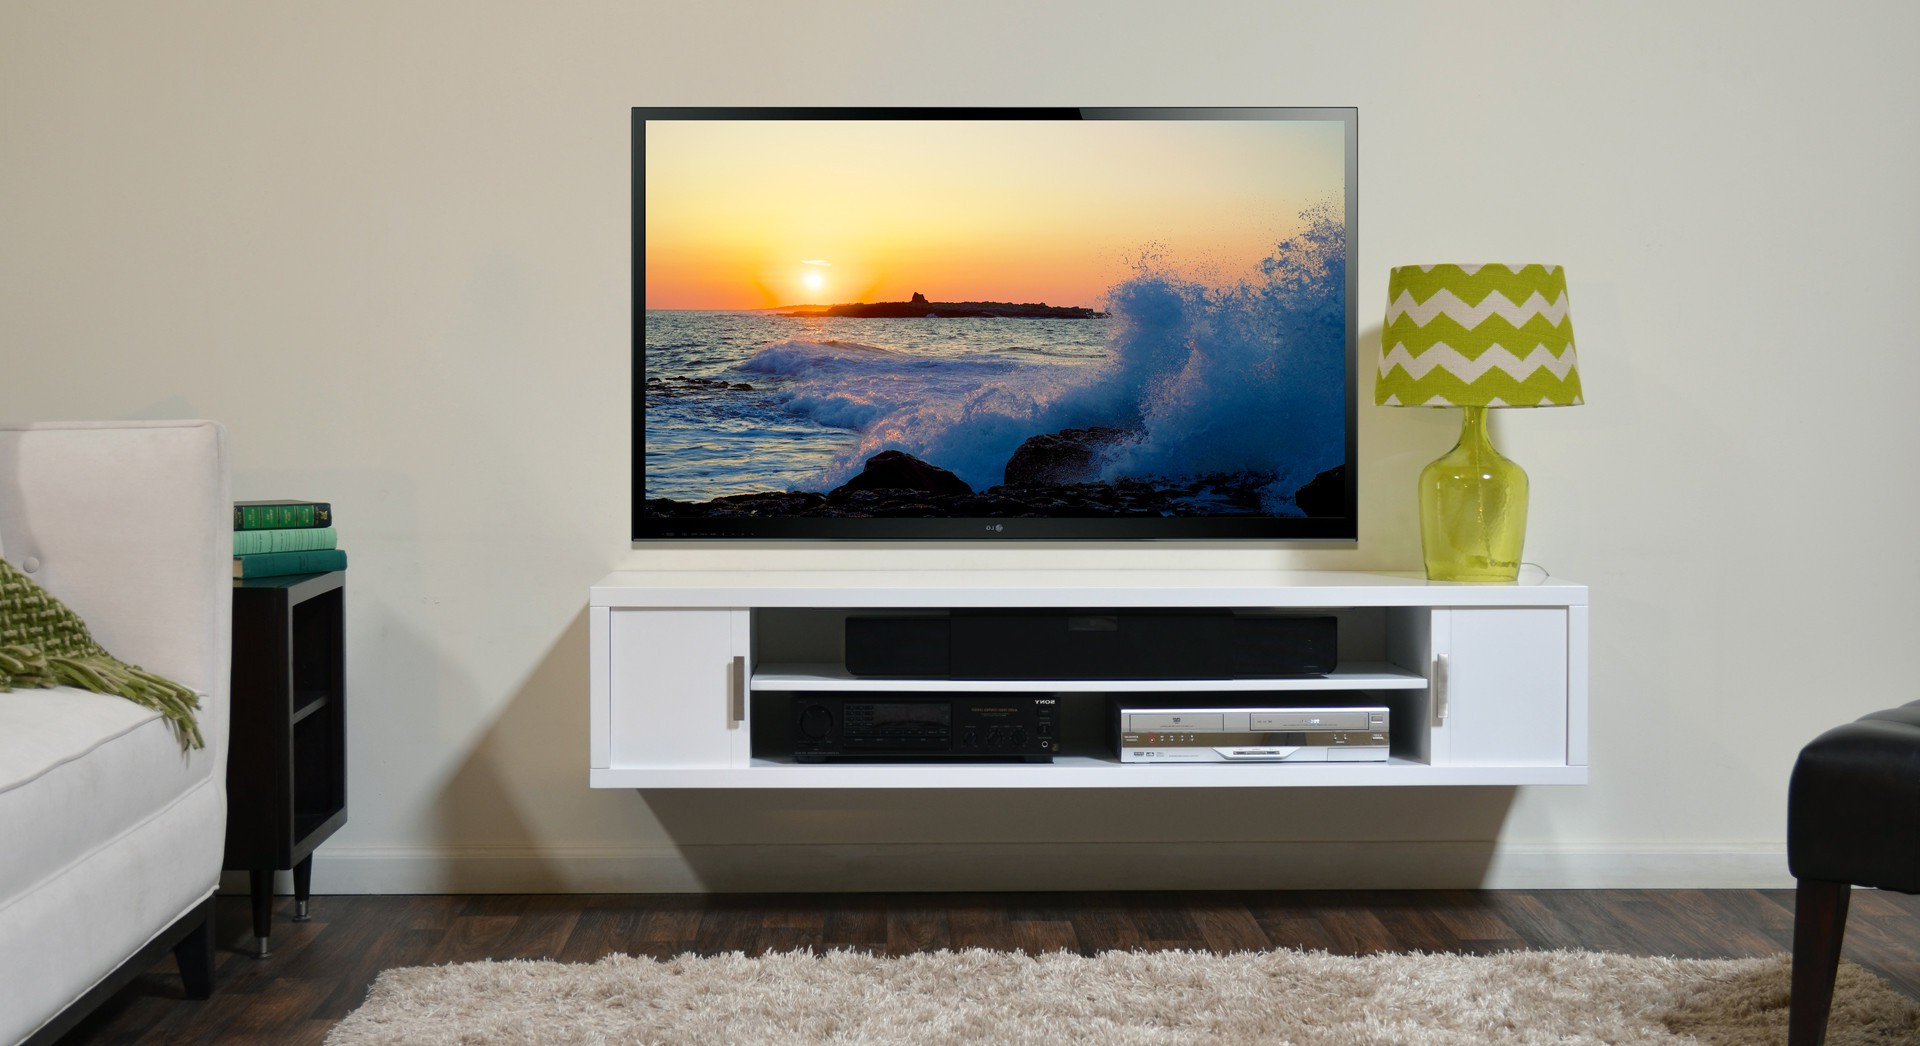 Well Known Floating Tv Stand For Small Space, Perfect! — Home Decor Within Tv Stands For Small Spaces (View 20 of 20)